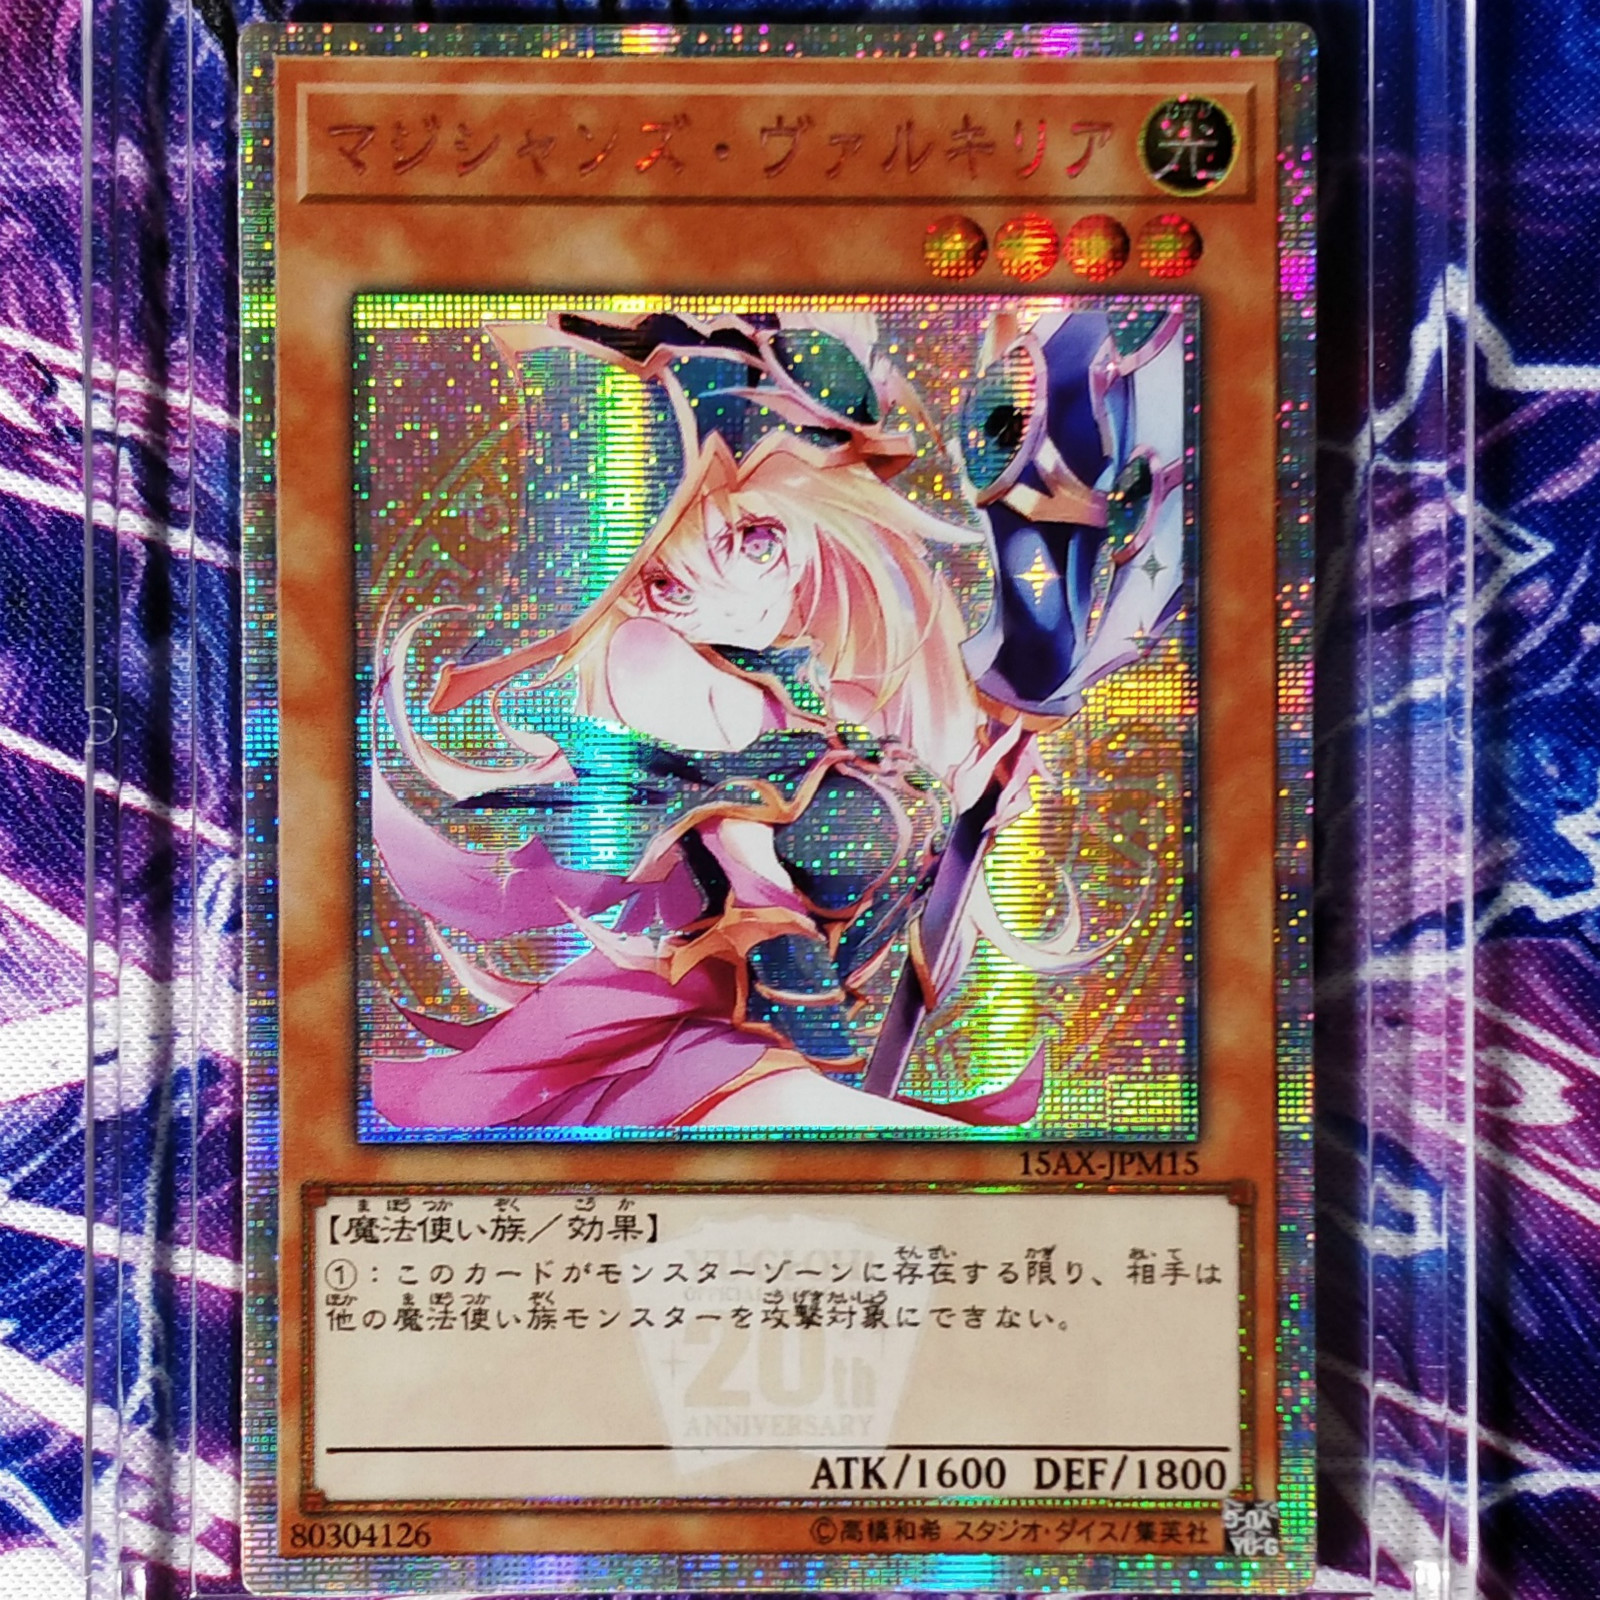 Yu Gi Oh Magician's Valkyria DIY Colorful Toys Hobbies Hobby Collectibles Game Collection Anime Cards